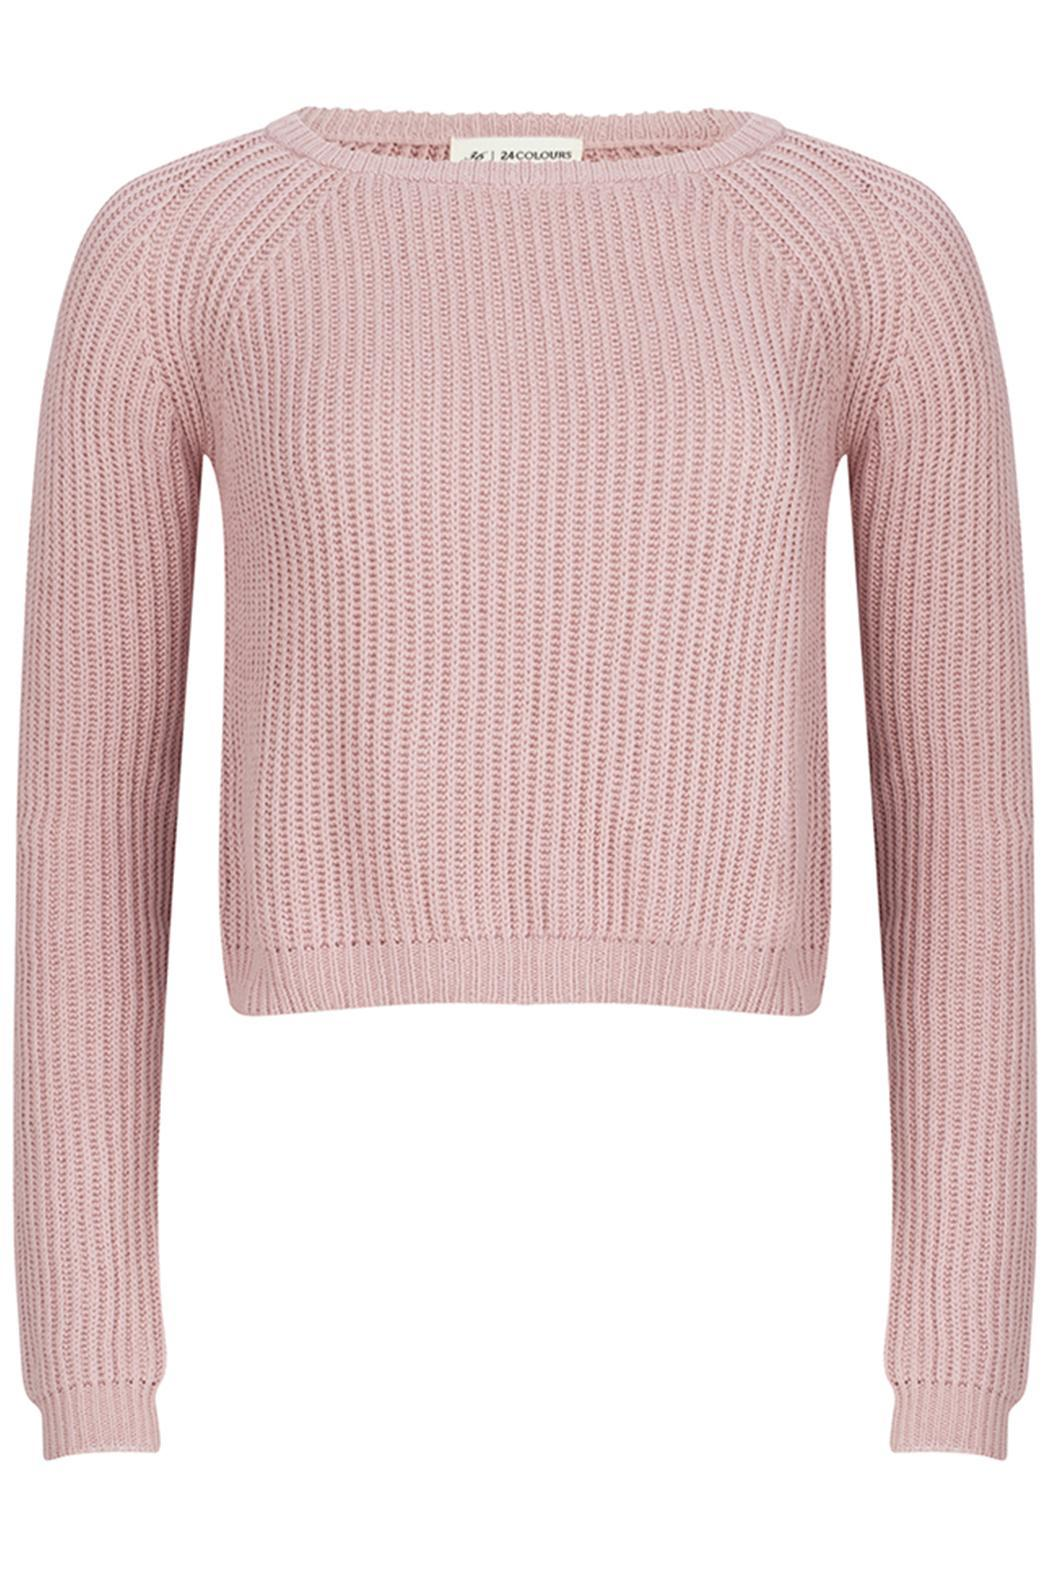 24colours Pink Cropped Sweater from Netherlands by Wear for Love ...